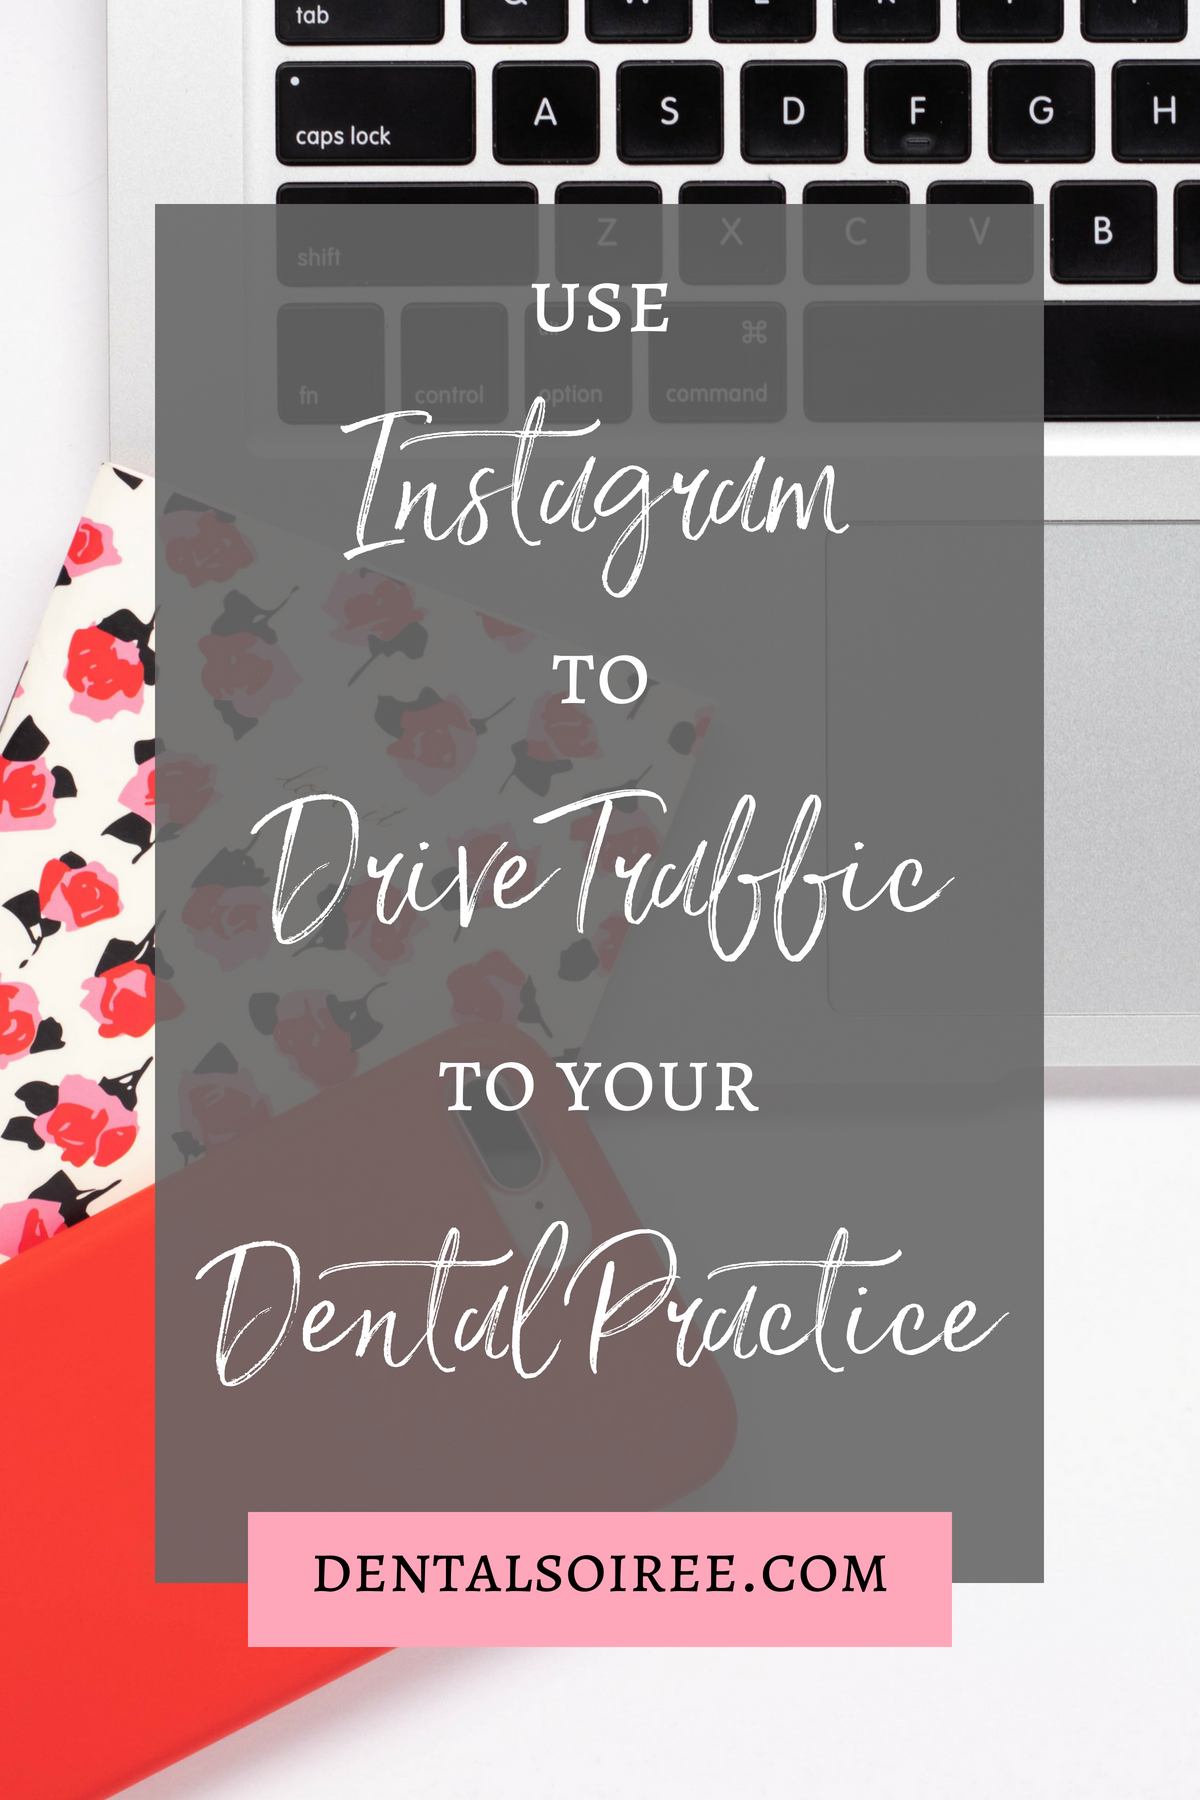 Use Instagram to Drive Traffic To Your Dental Practice